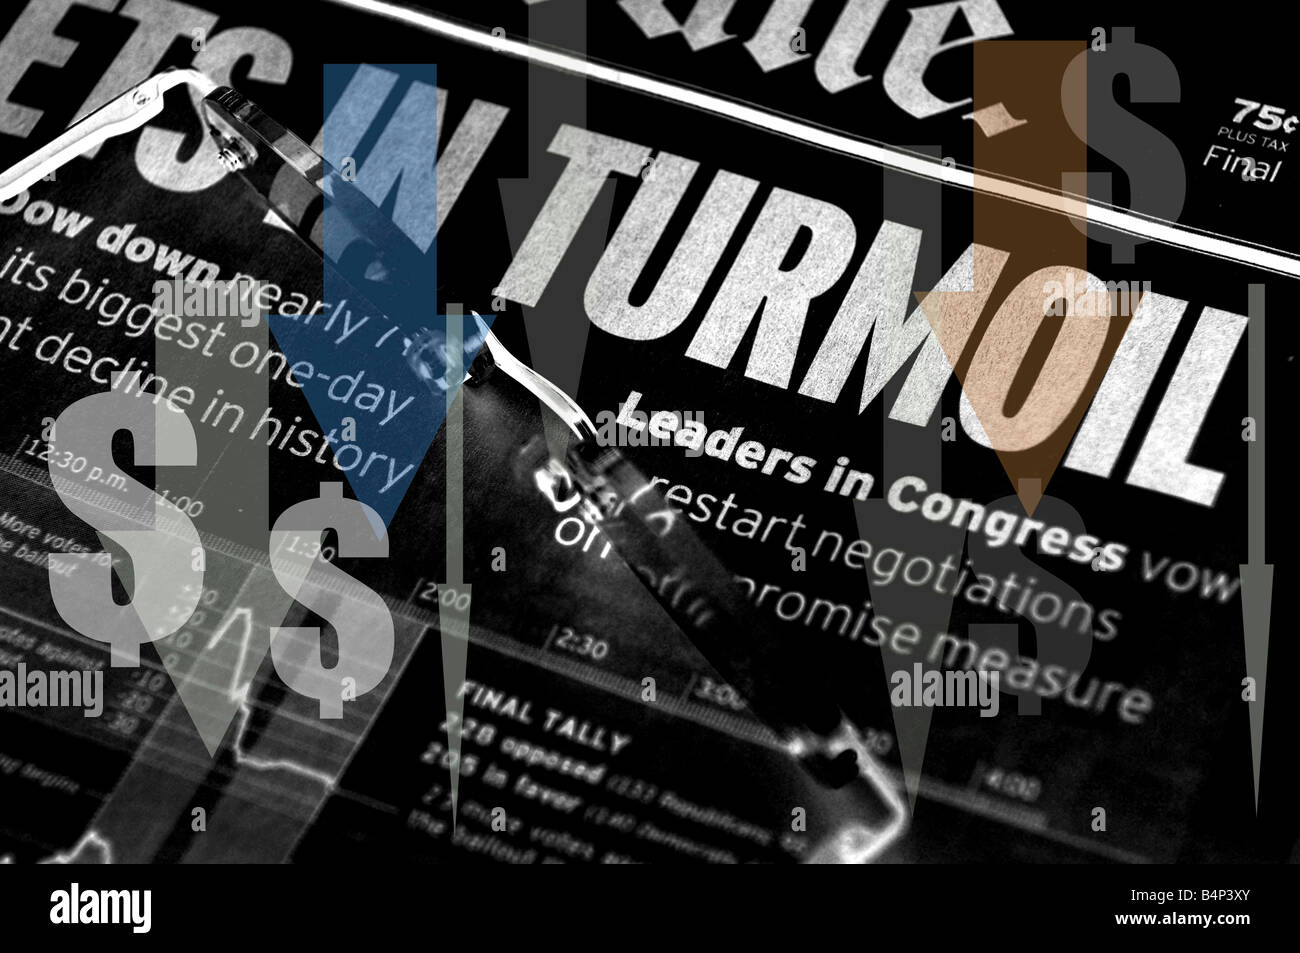 Markets In Turmoil - stock market headlines - Stock Image